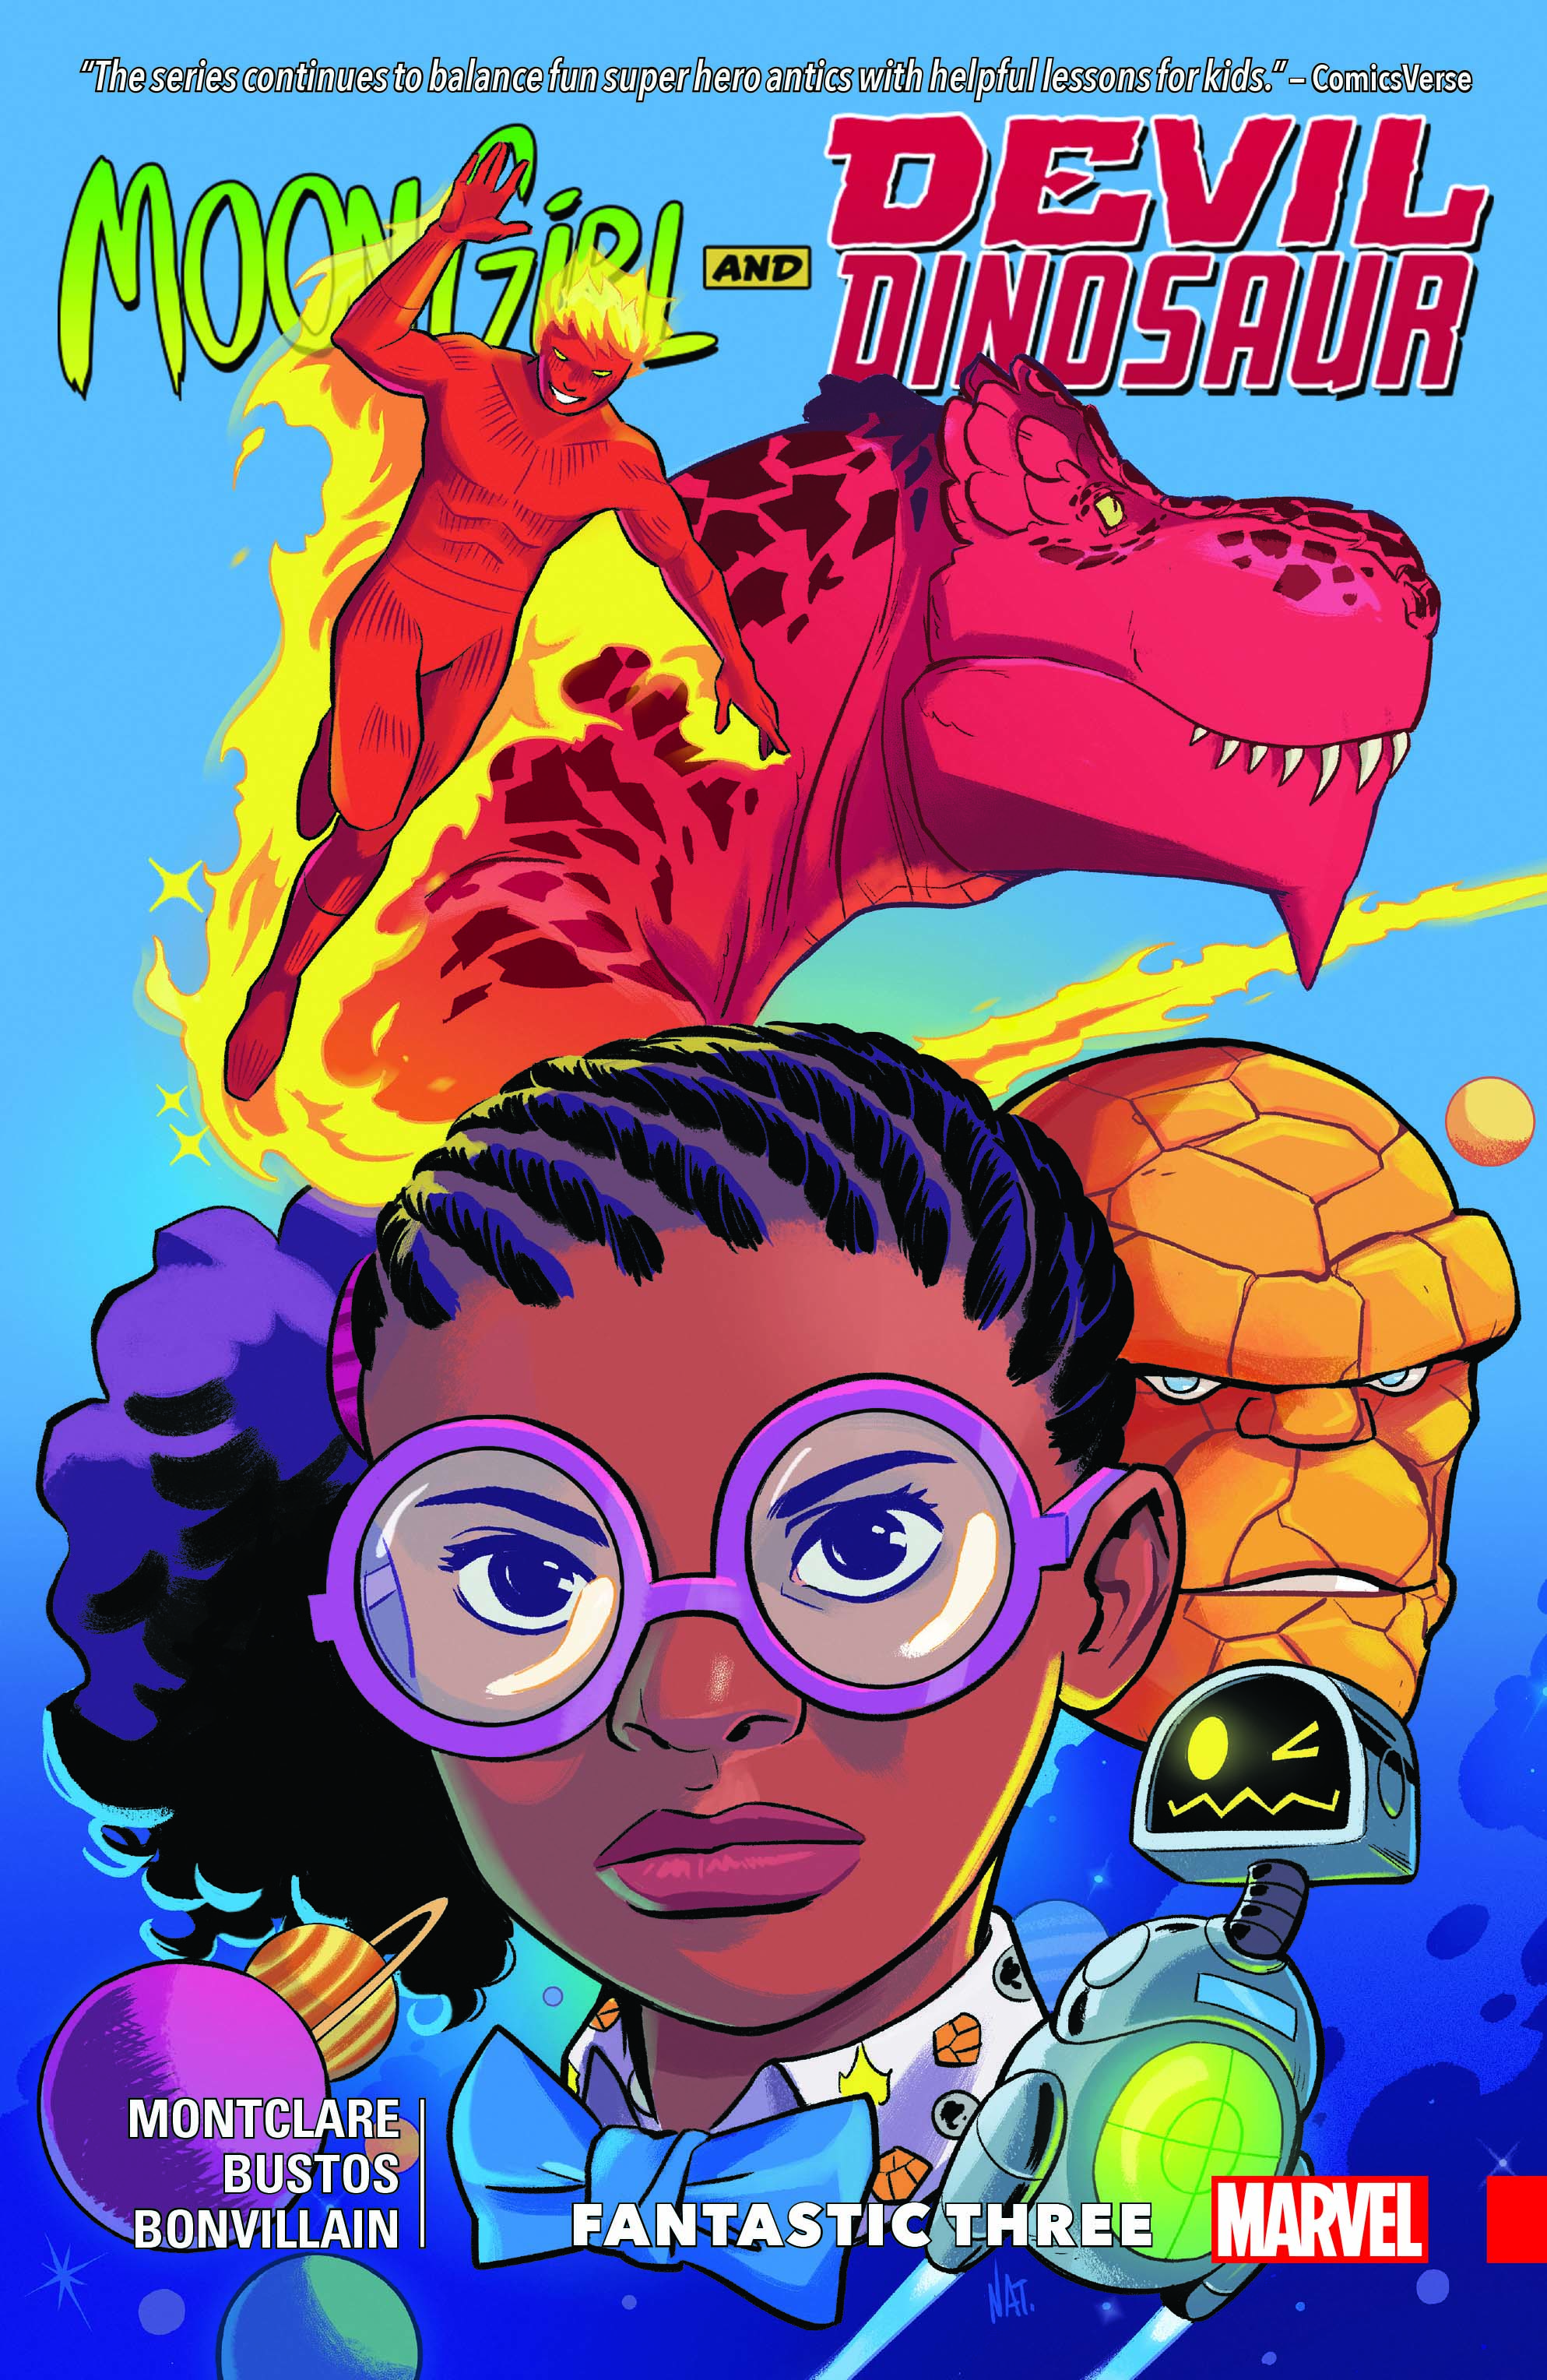 The cover of an issue of Moon Girl and Devil Dinosaur